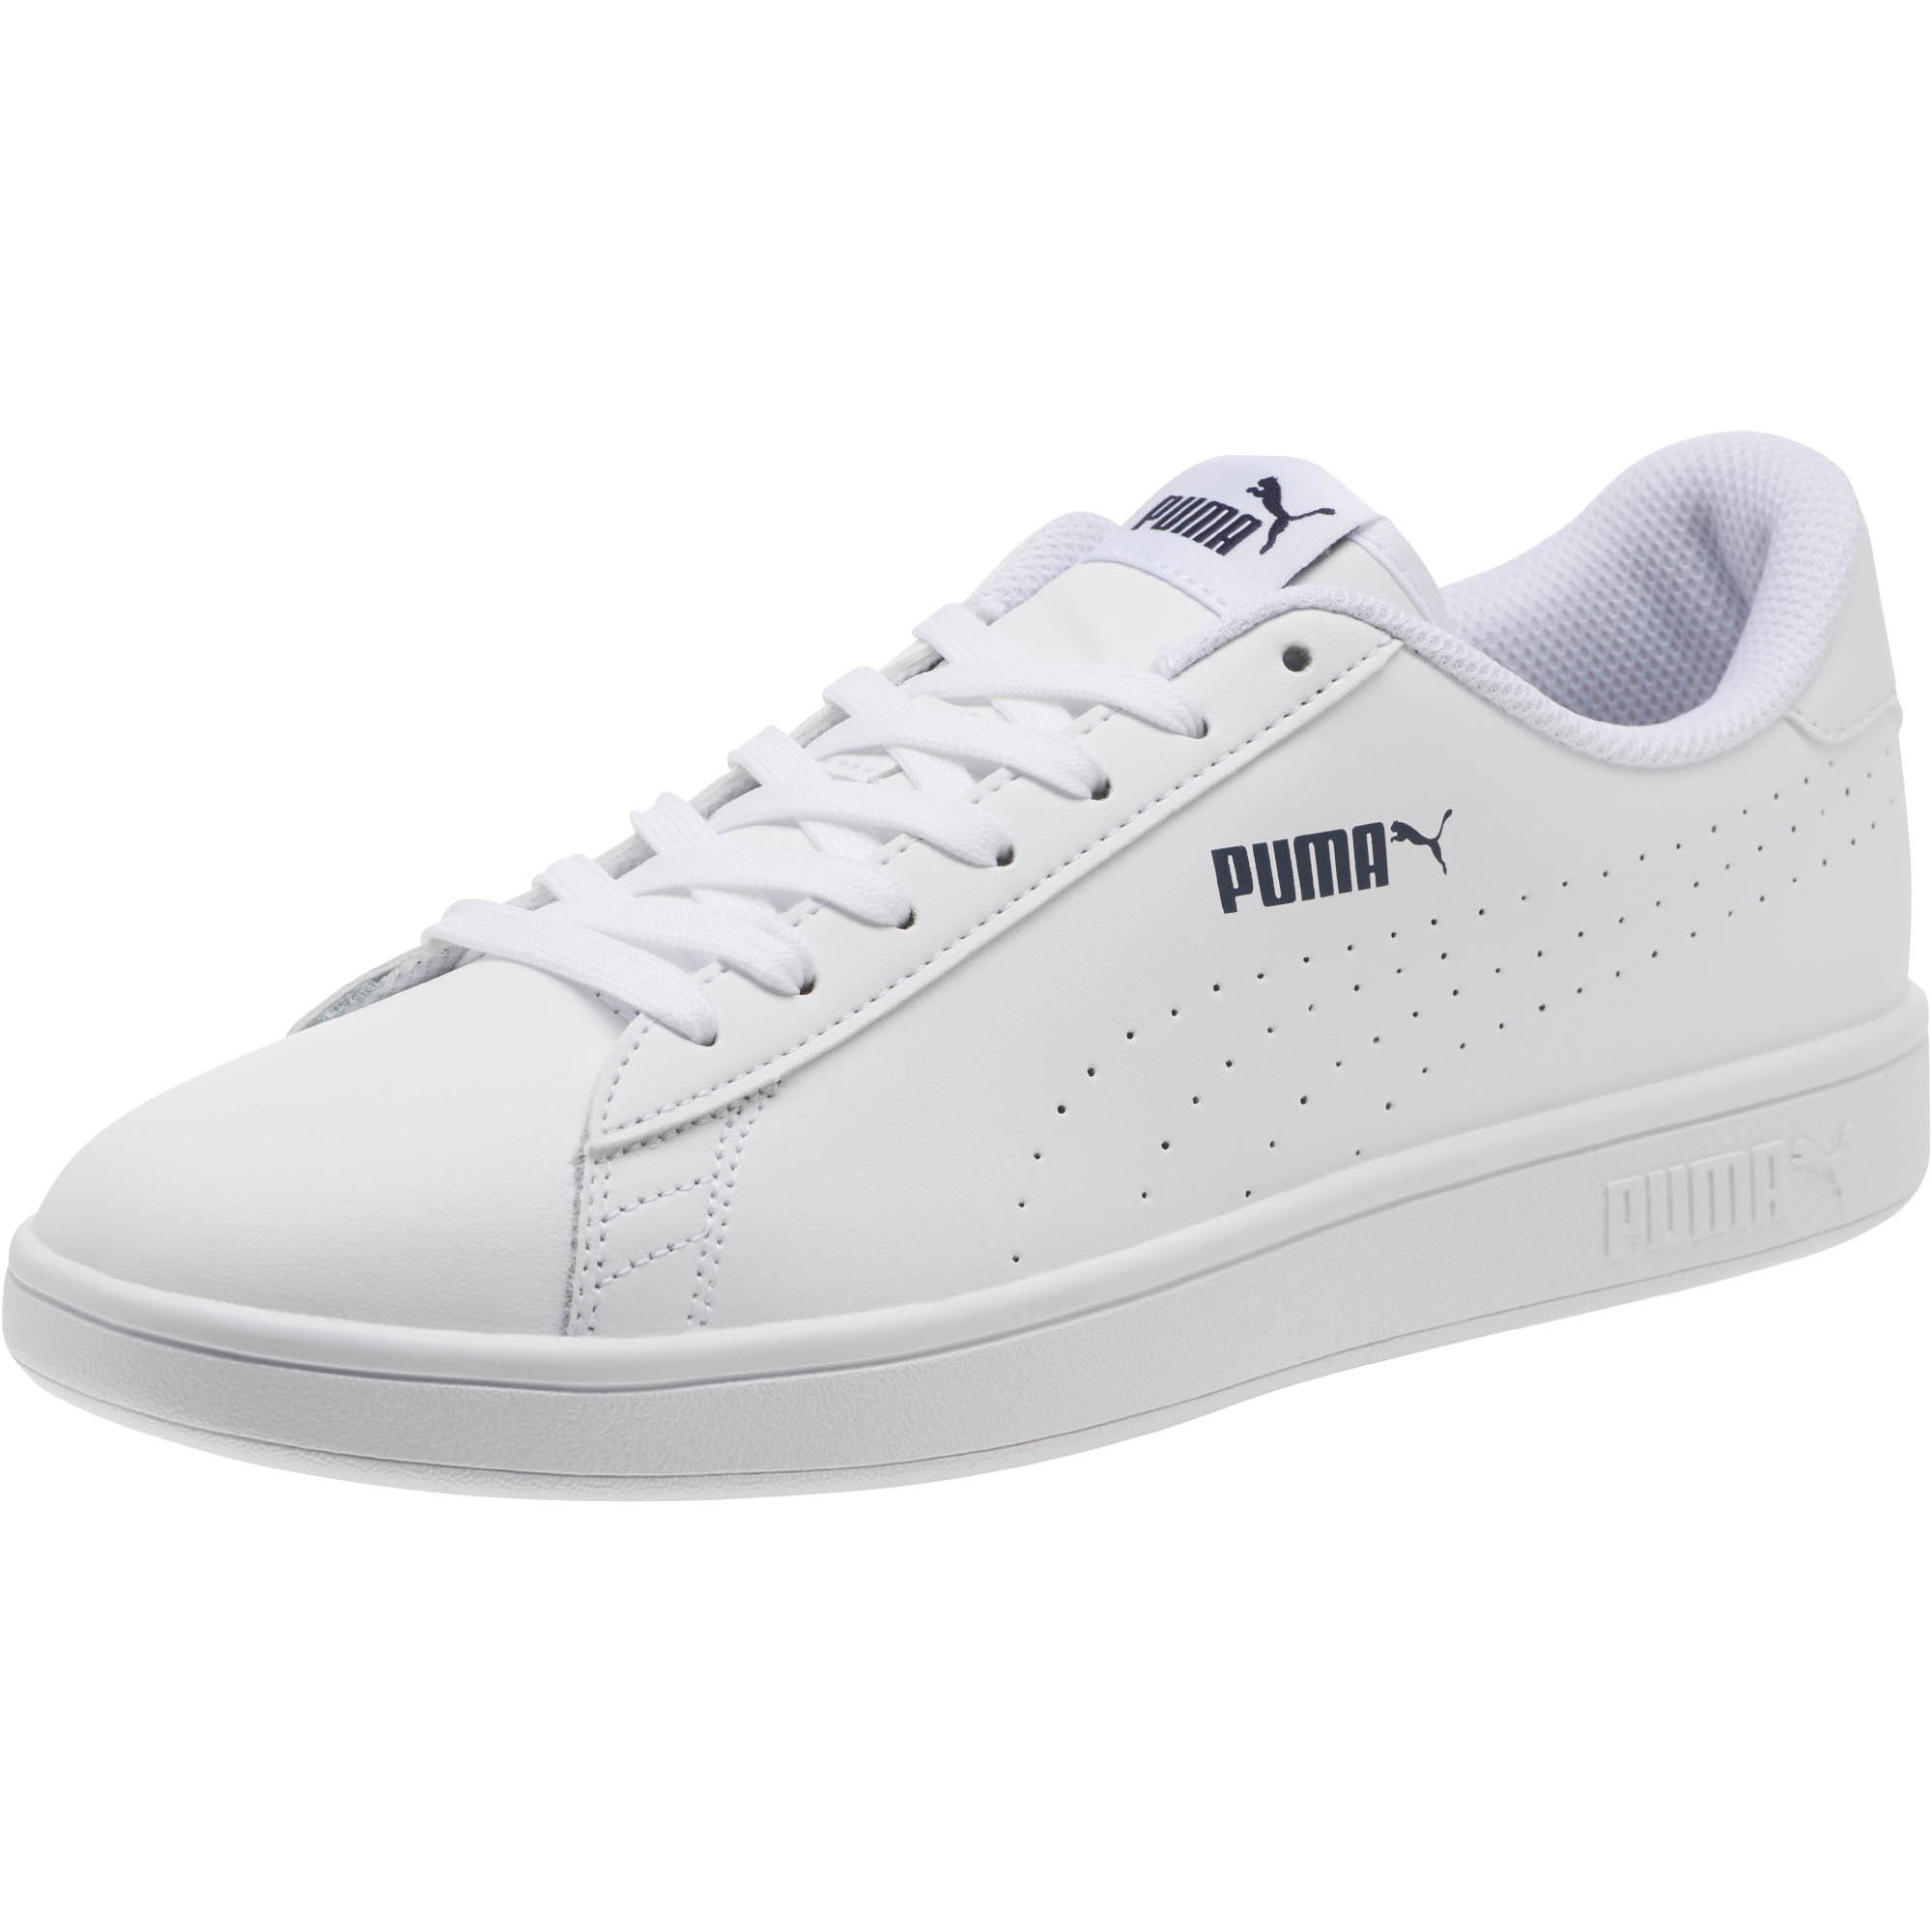 PUMA-PUMA-Smash-v2-Leather-Perf-Sneakers-Men-Shoe-Basics miniatura 4